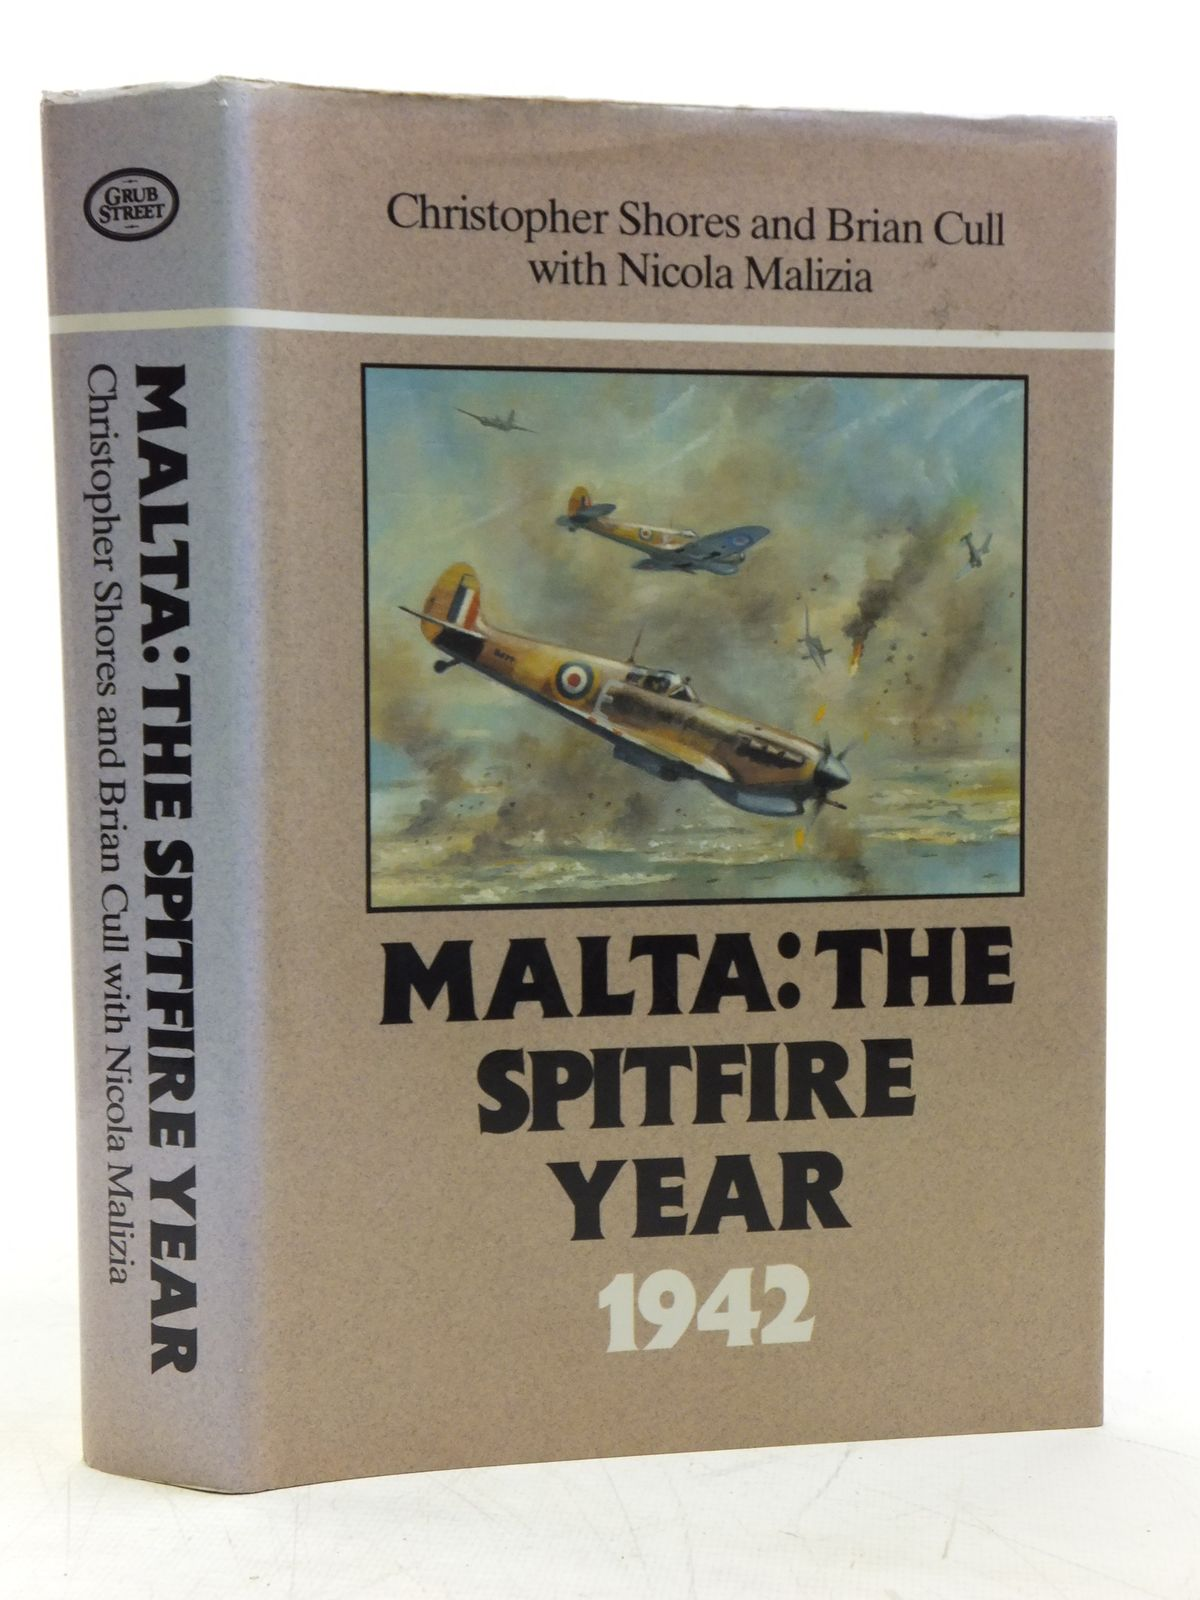 Photo of MALTA: THE SPITFIRE YEAR 1942 written by Shores, Christopher Cull, Brian Malizia, Nicola published by Grub Street (STOCK CODE: 1607879)  for sale by Stella & Rose's Books